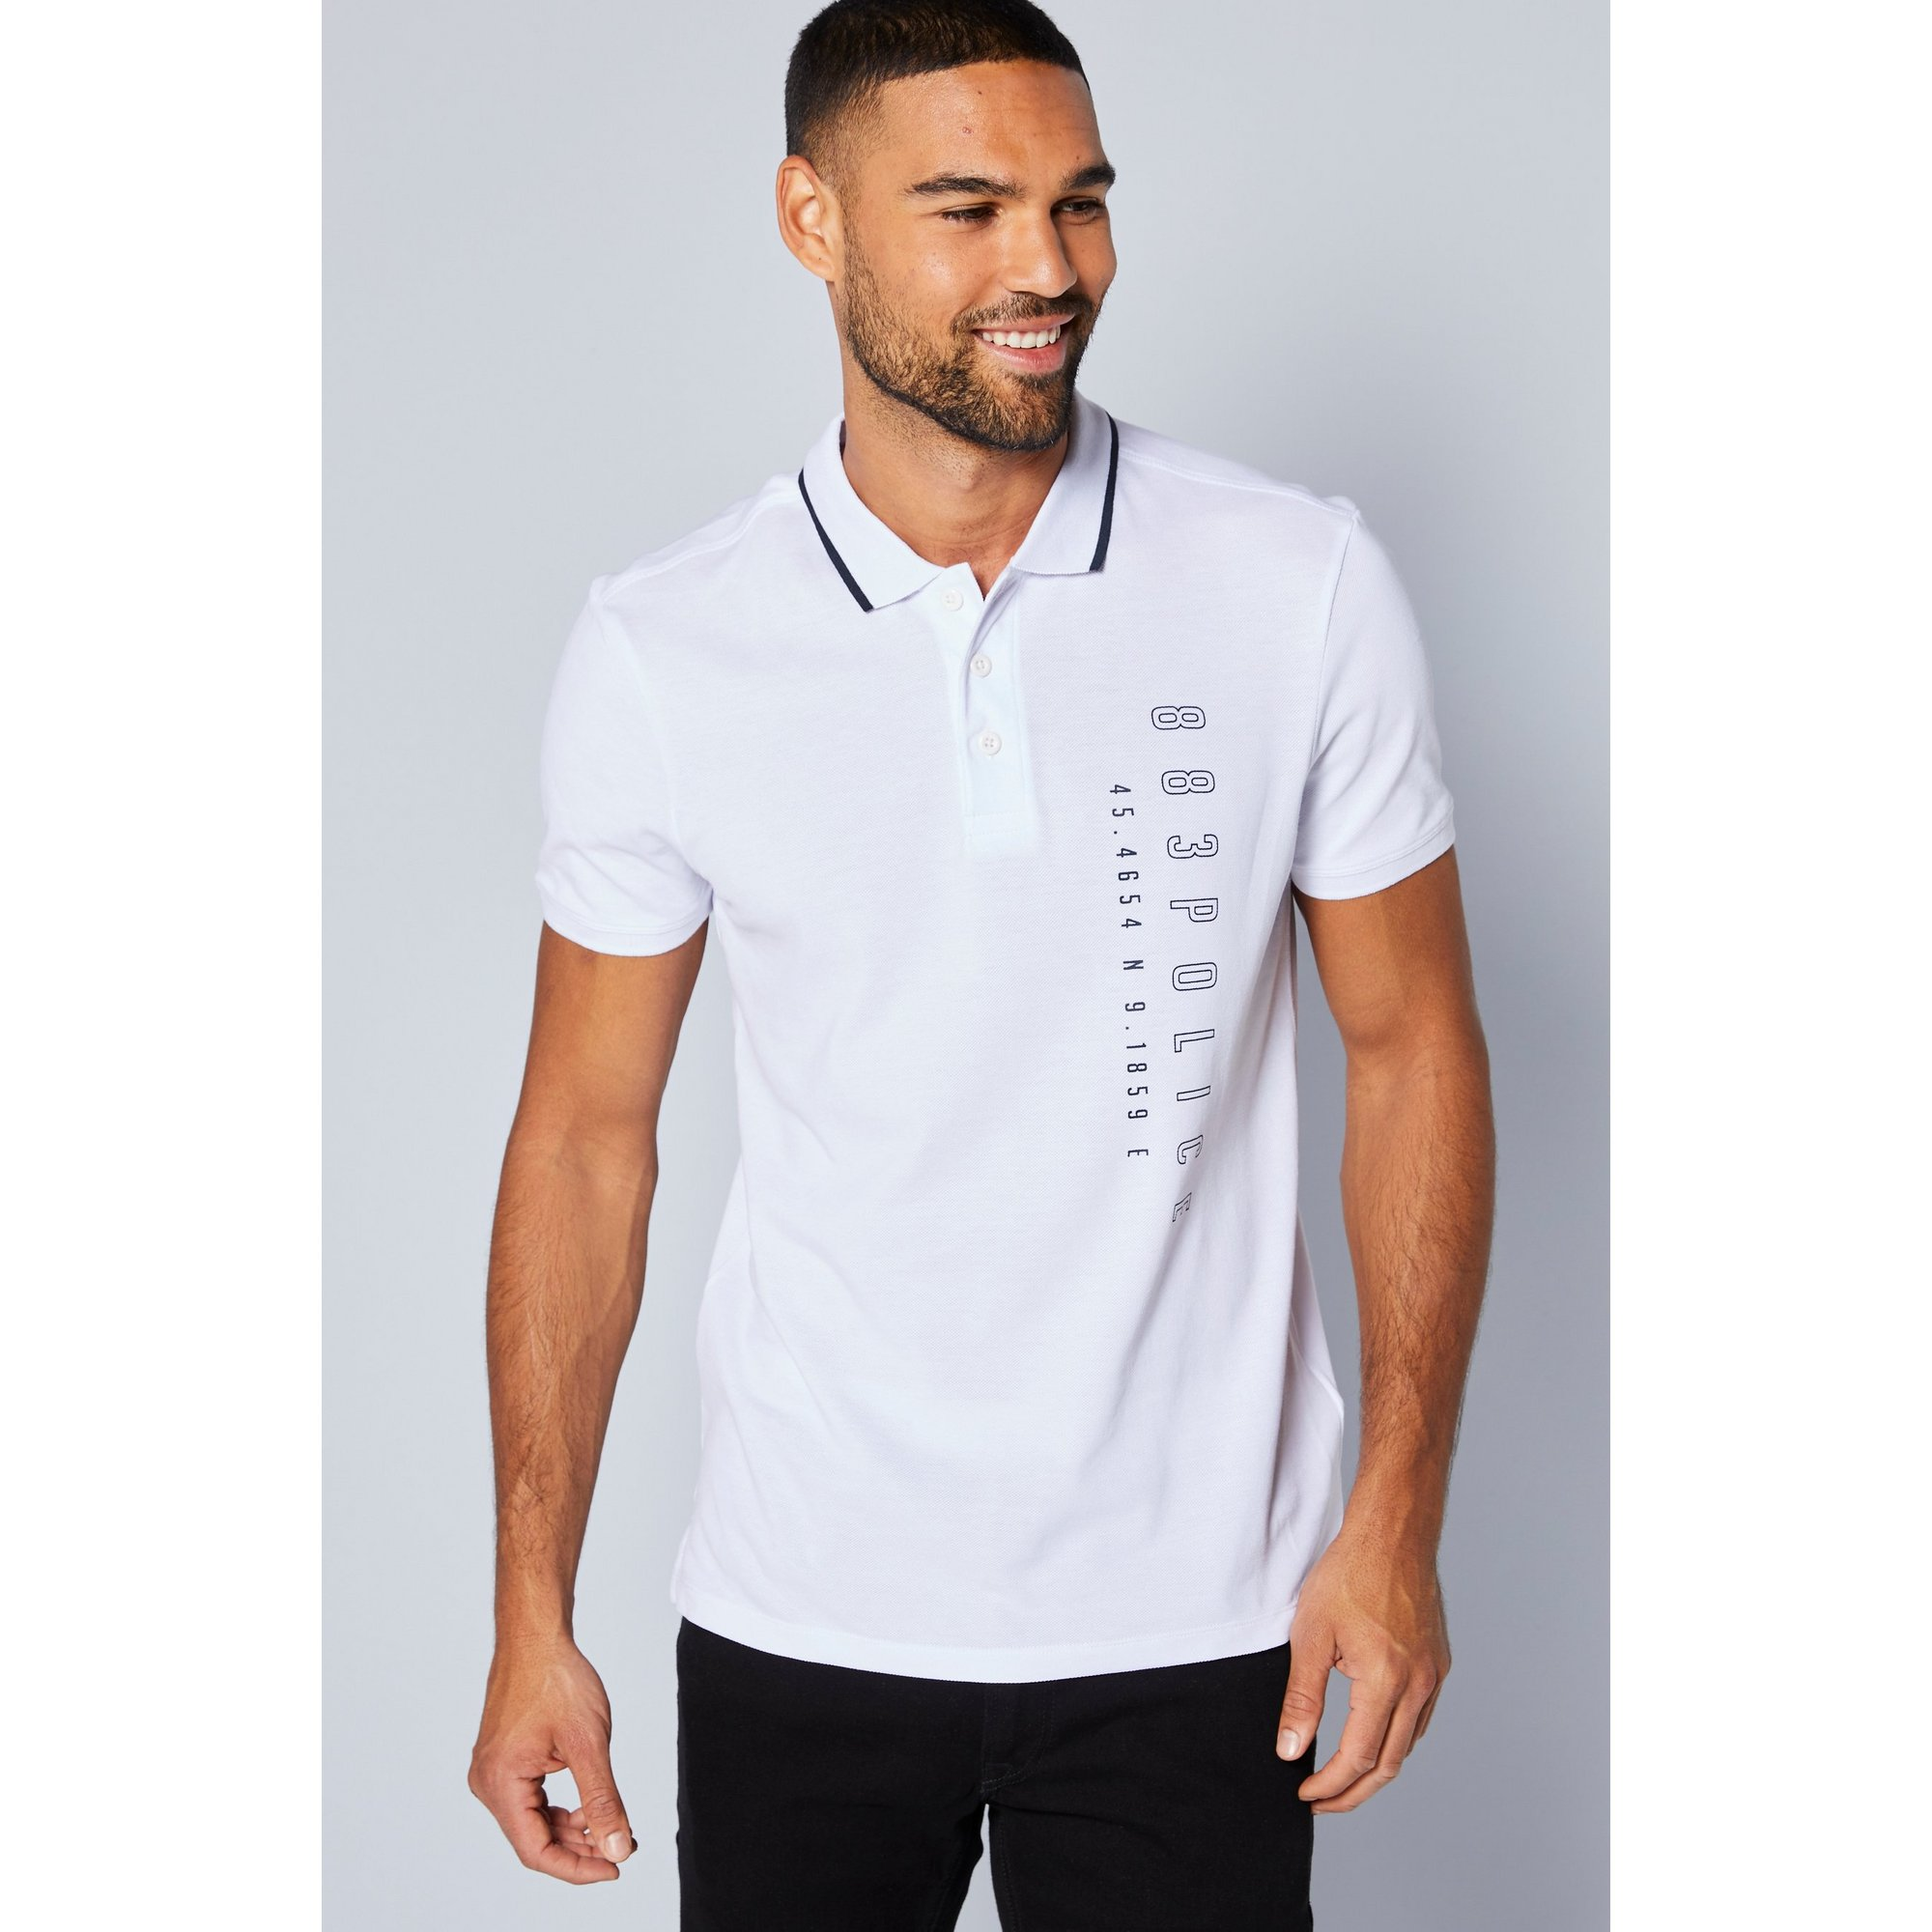 Image of 883 Police Black and White Taping Polo Shirt